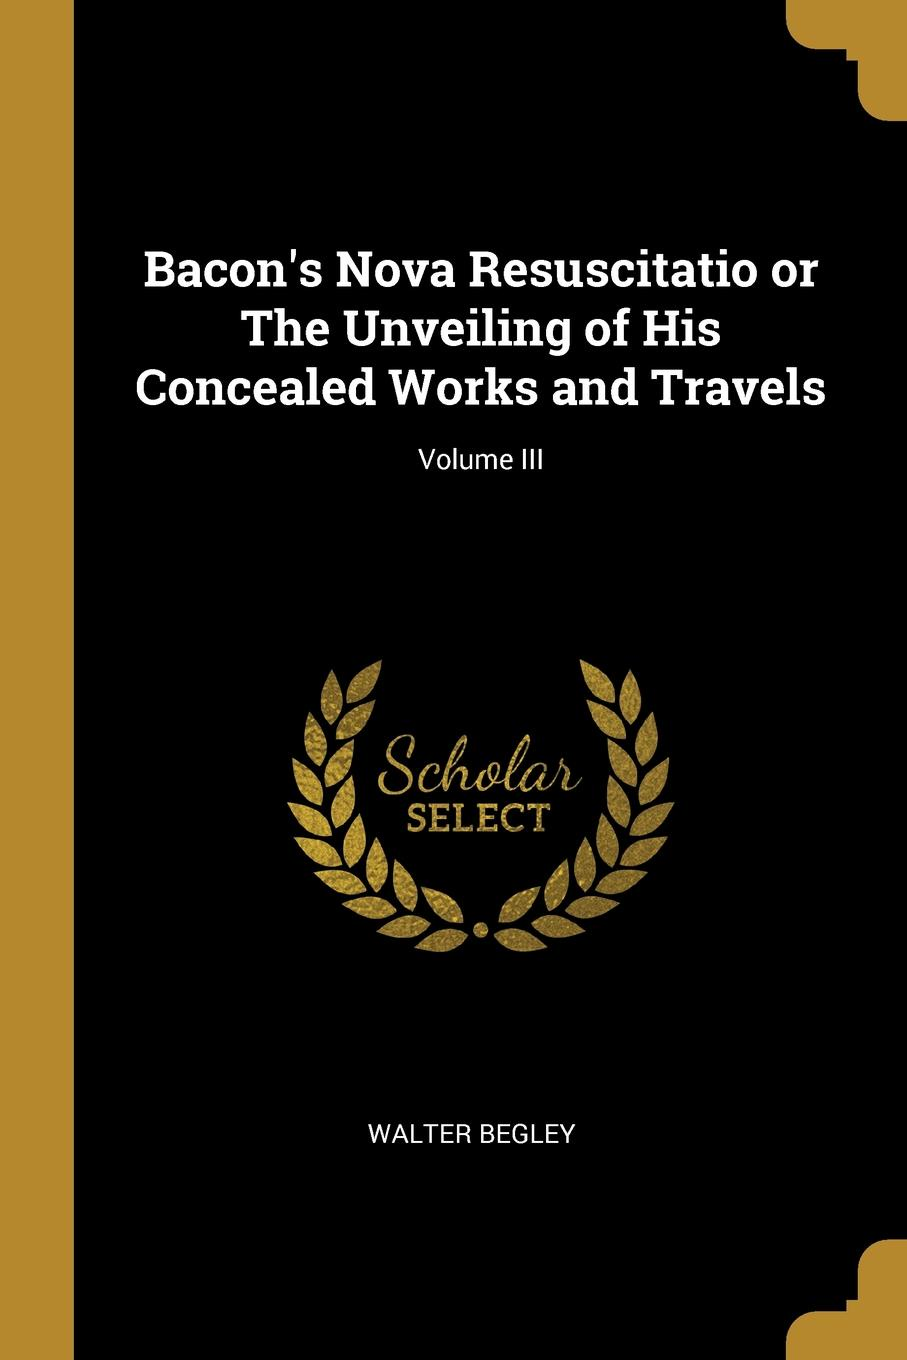 Walter Begley. Bacon.s Nova Resuscitatio or The Unveiling of His Concealed Works and Travels; Volume III